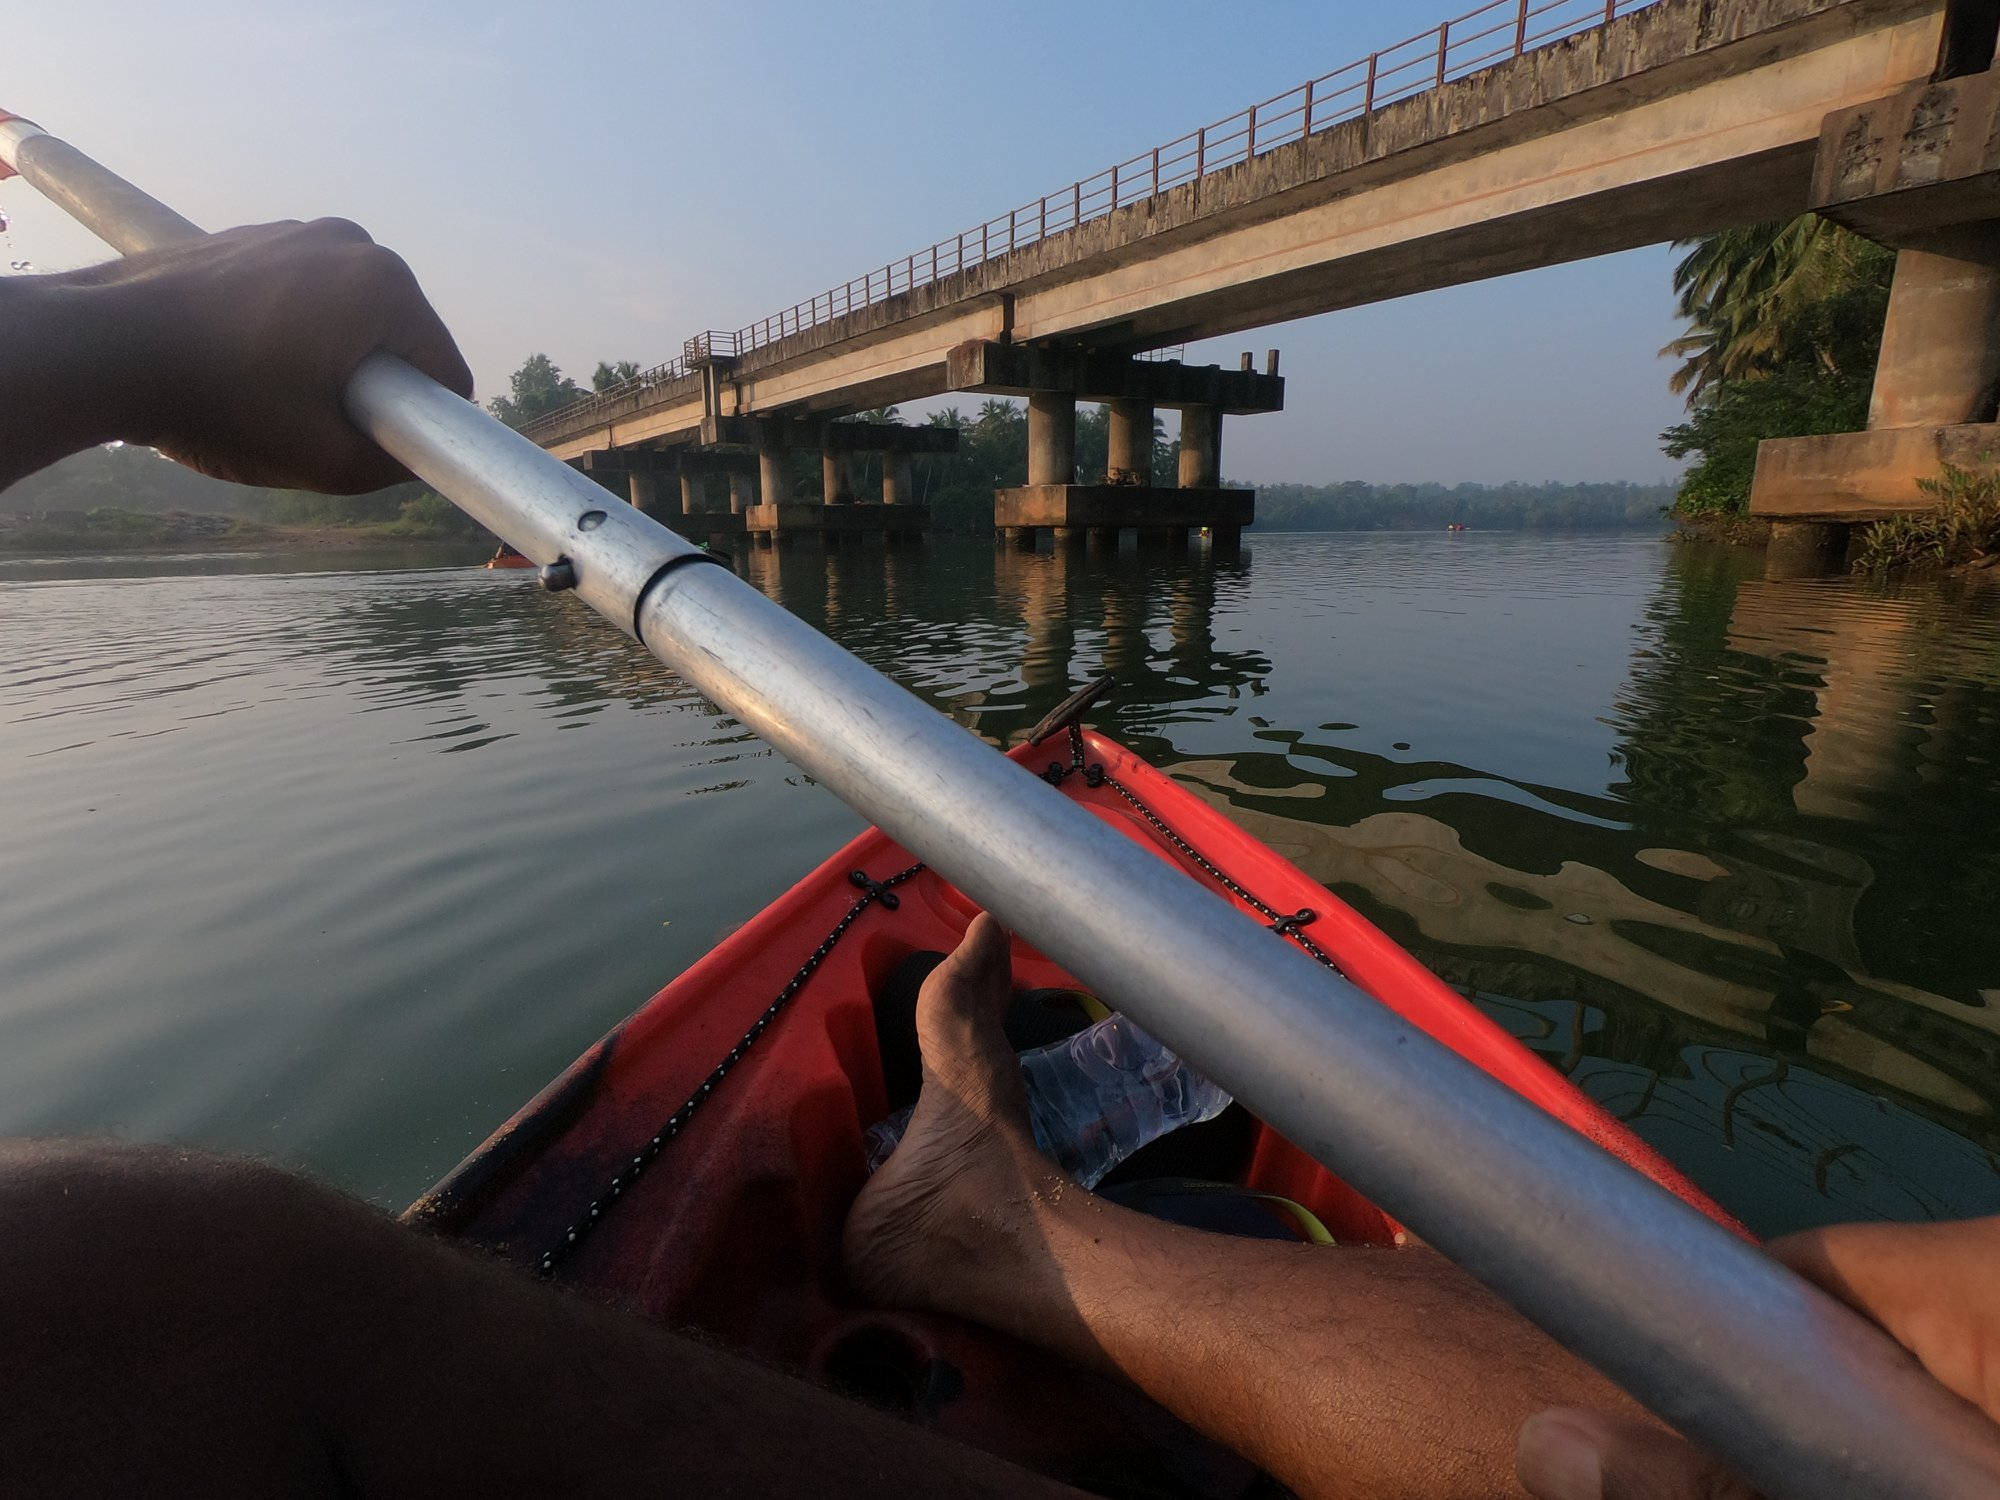 Kayaking on the Shambhavi River, passing Railway Bridges